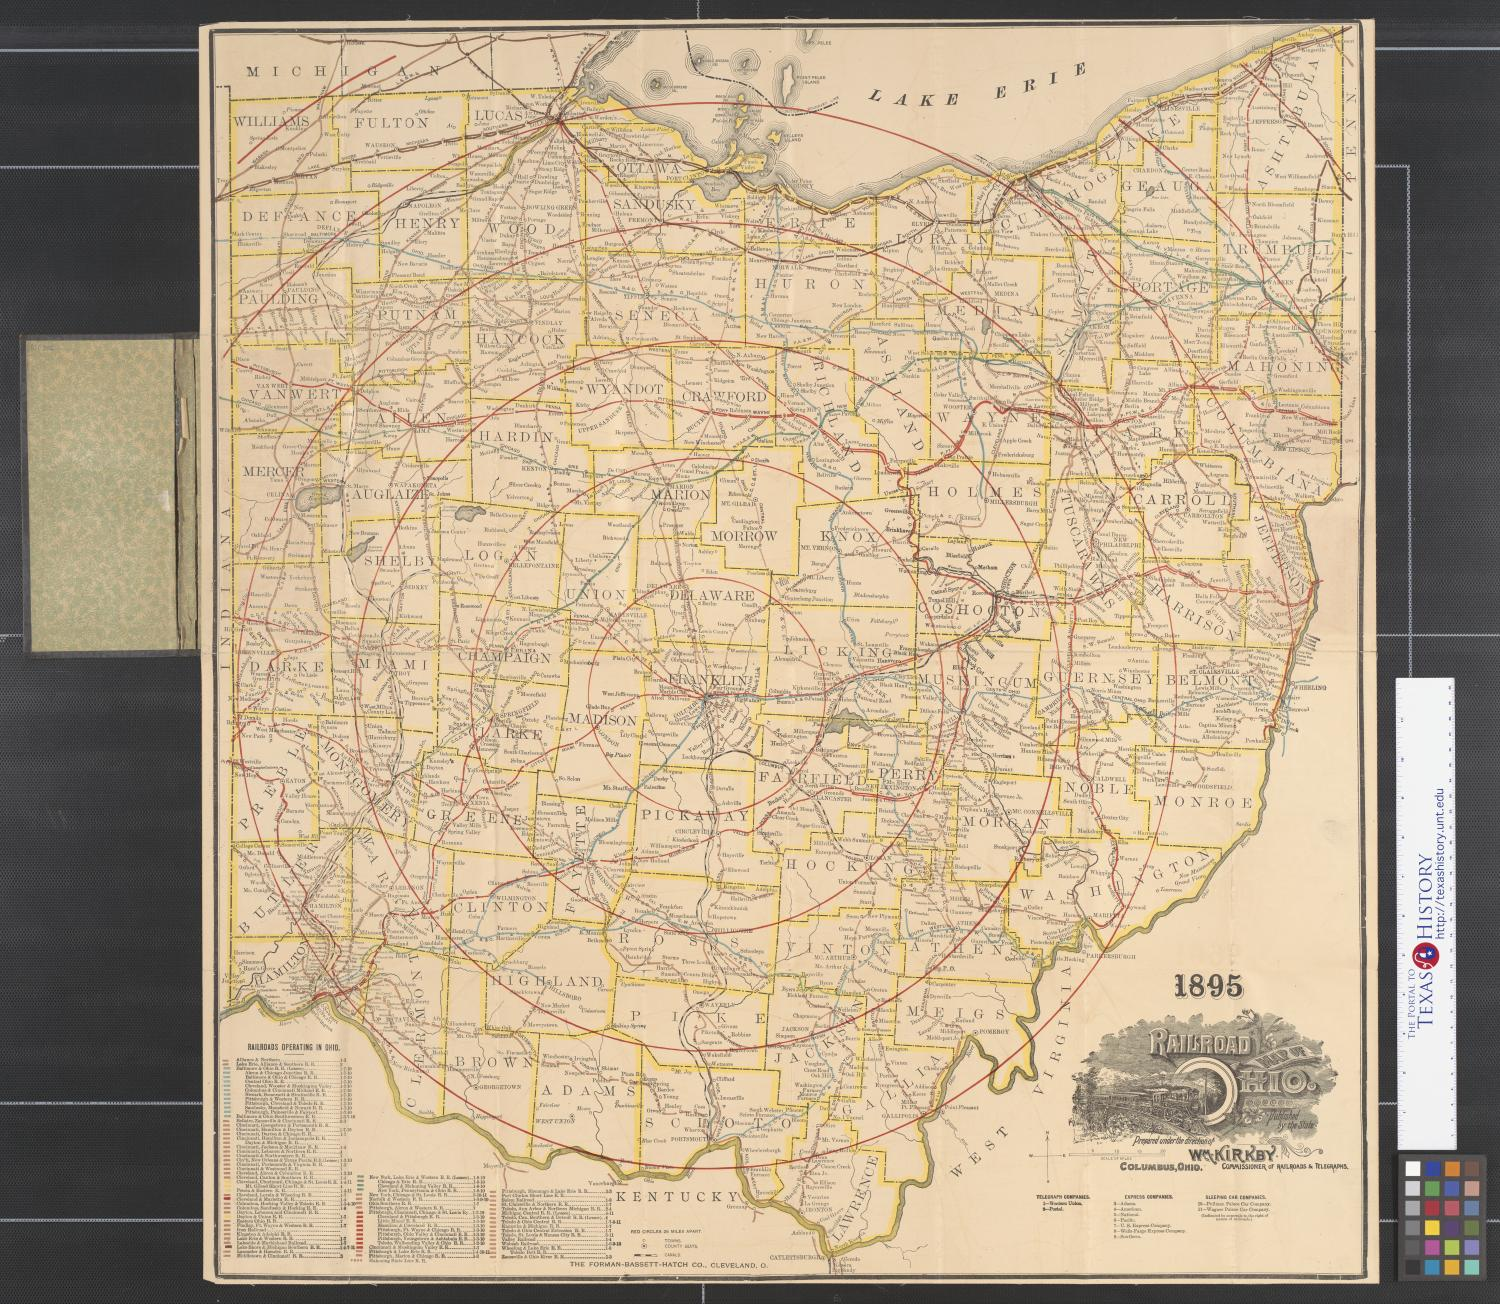 1895 railroad map of Ohio.                                                                                                      [Sequence #]: 1 of 2